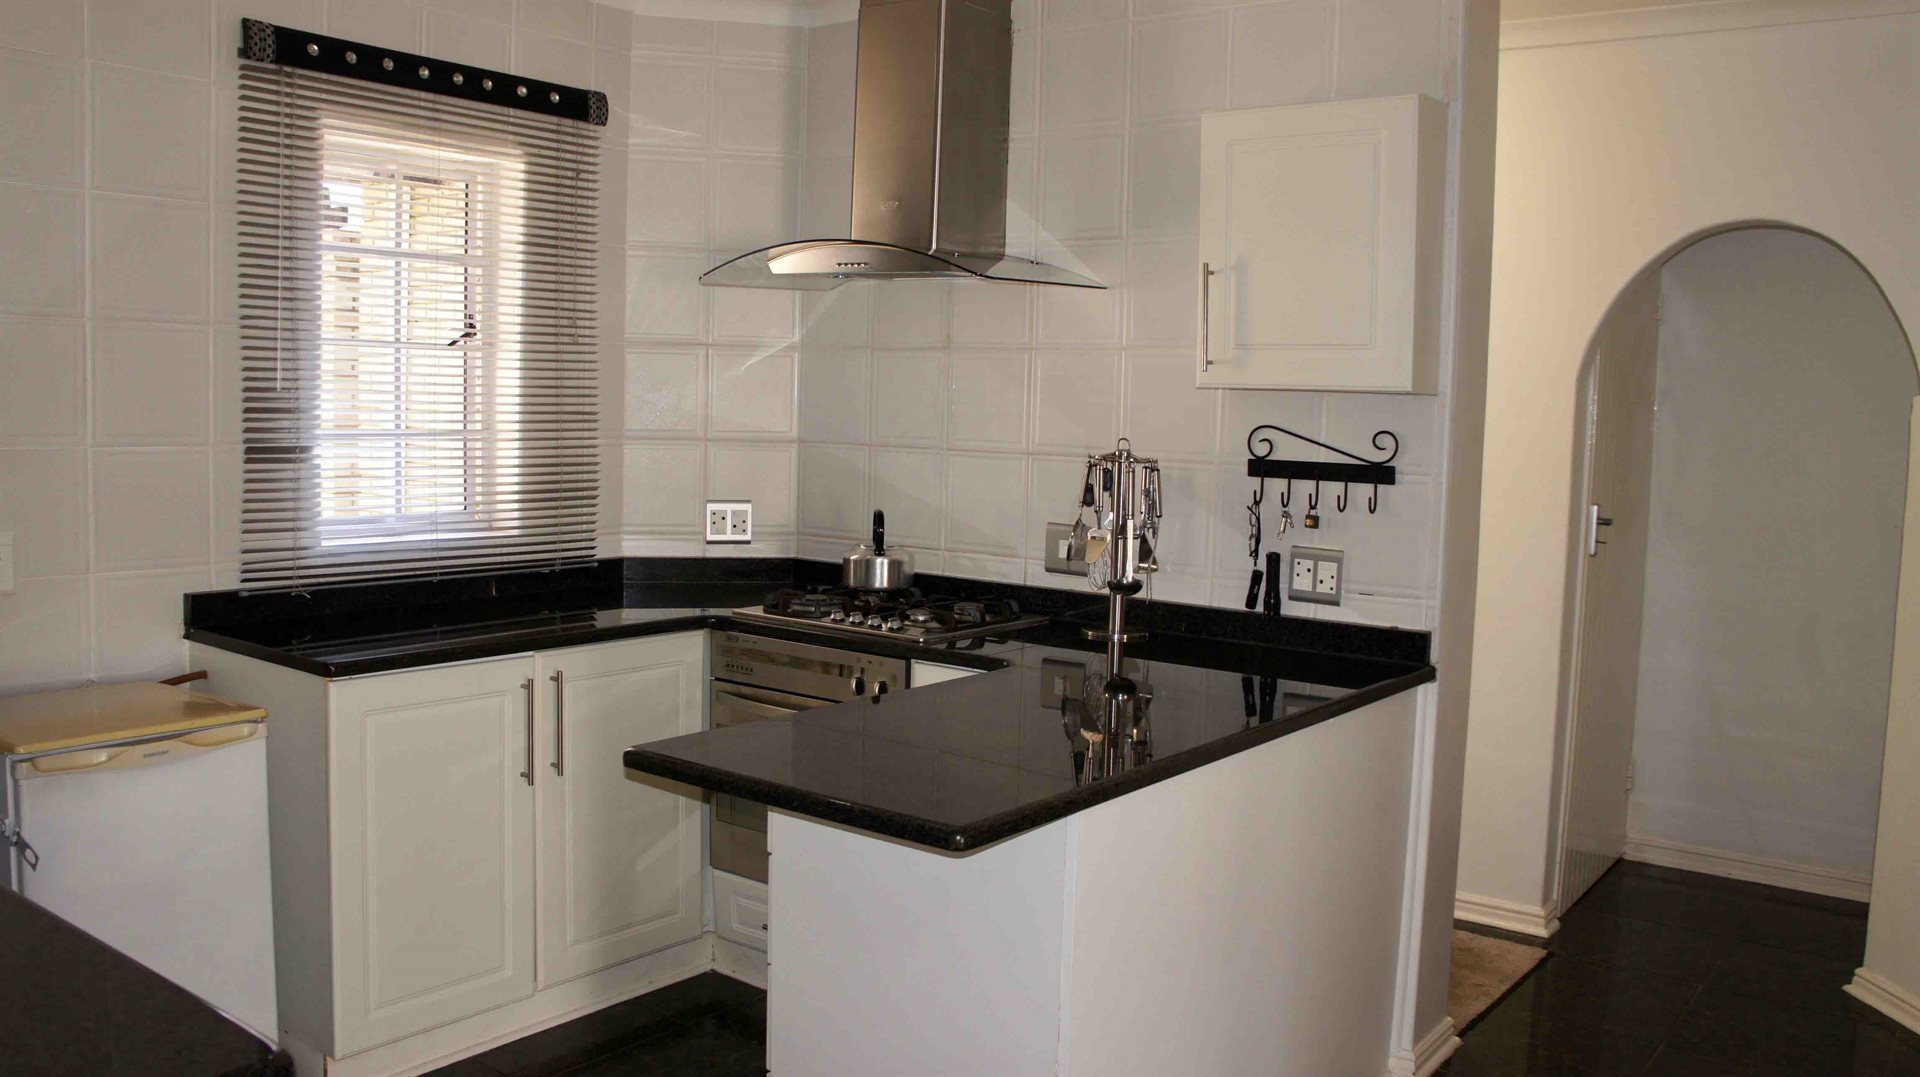 Meer En See property for sale. Ref No: 13544273. Picture no 1